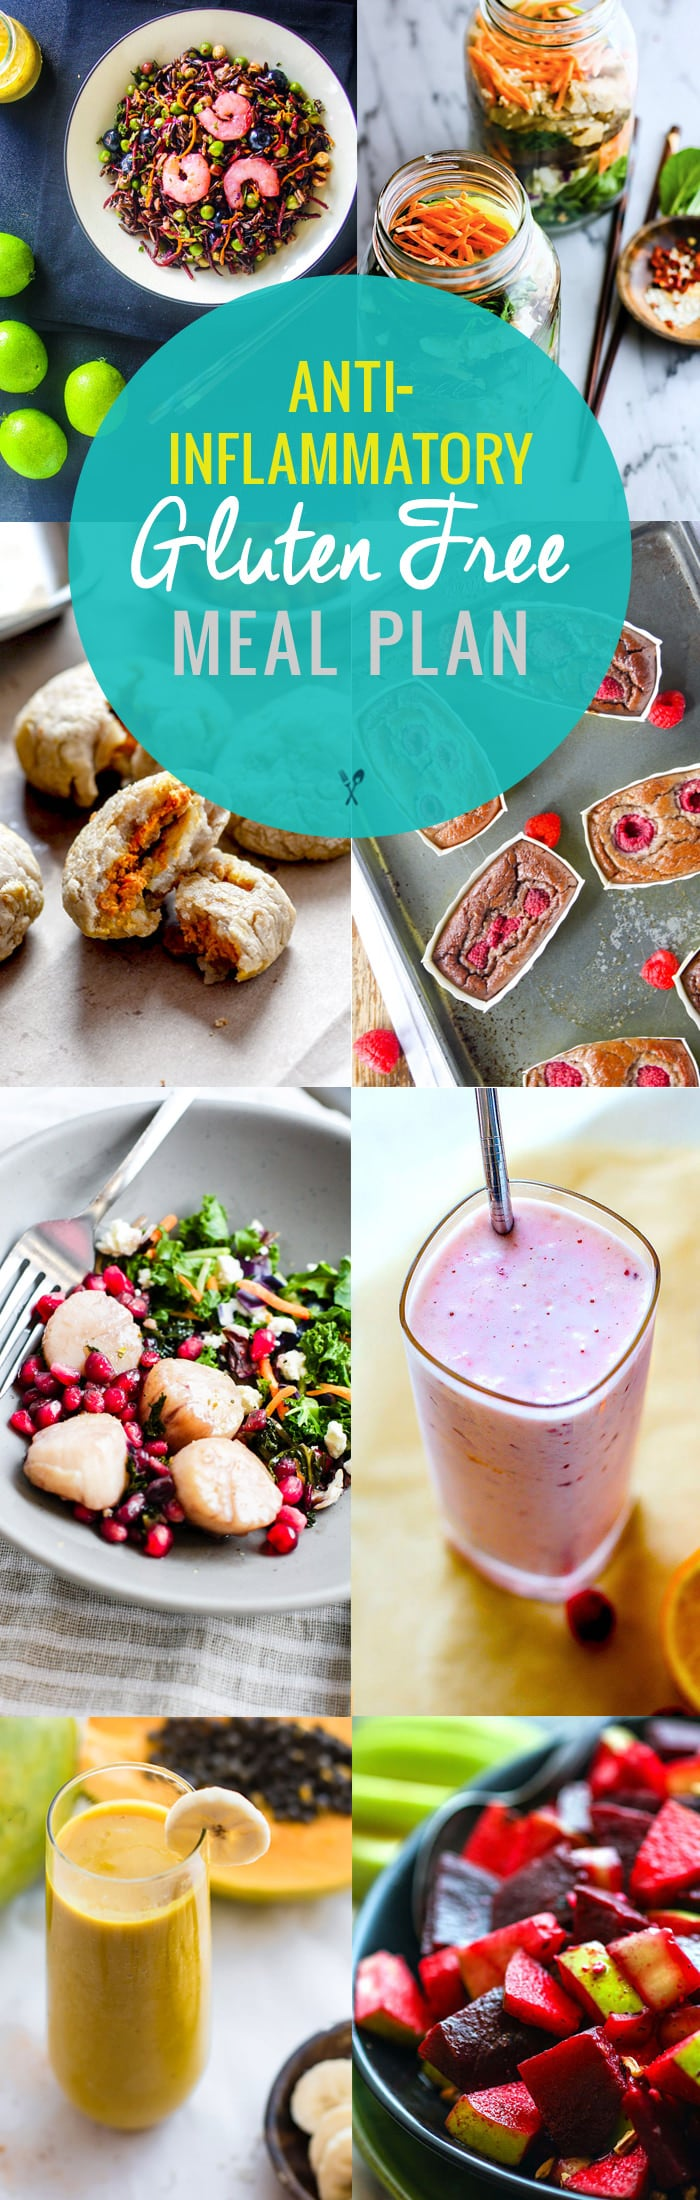 Anti Inflammatory Gluten Free Meal Plan Recipes And